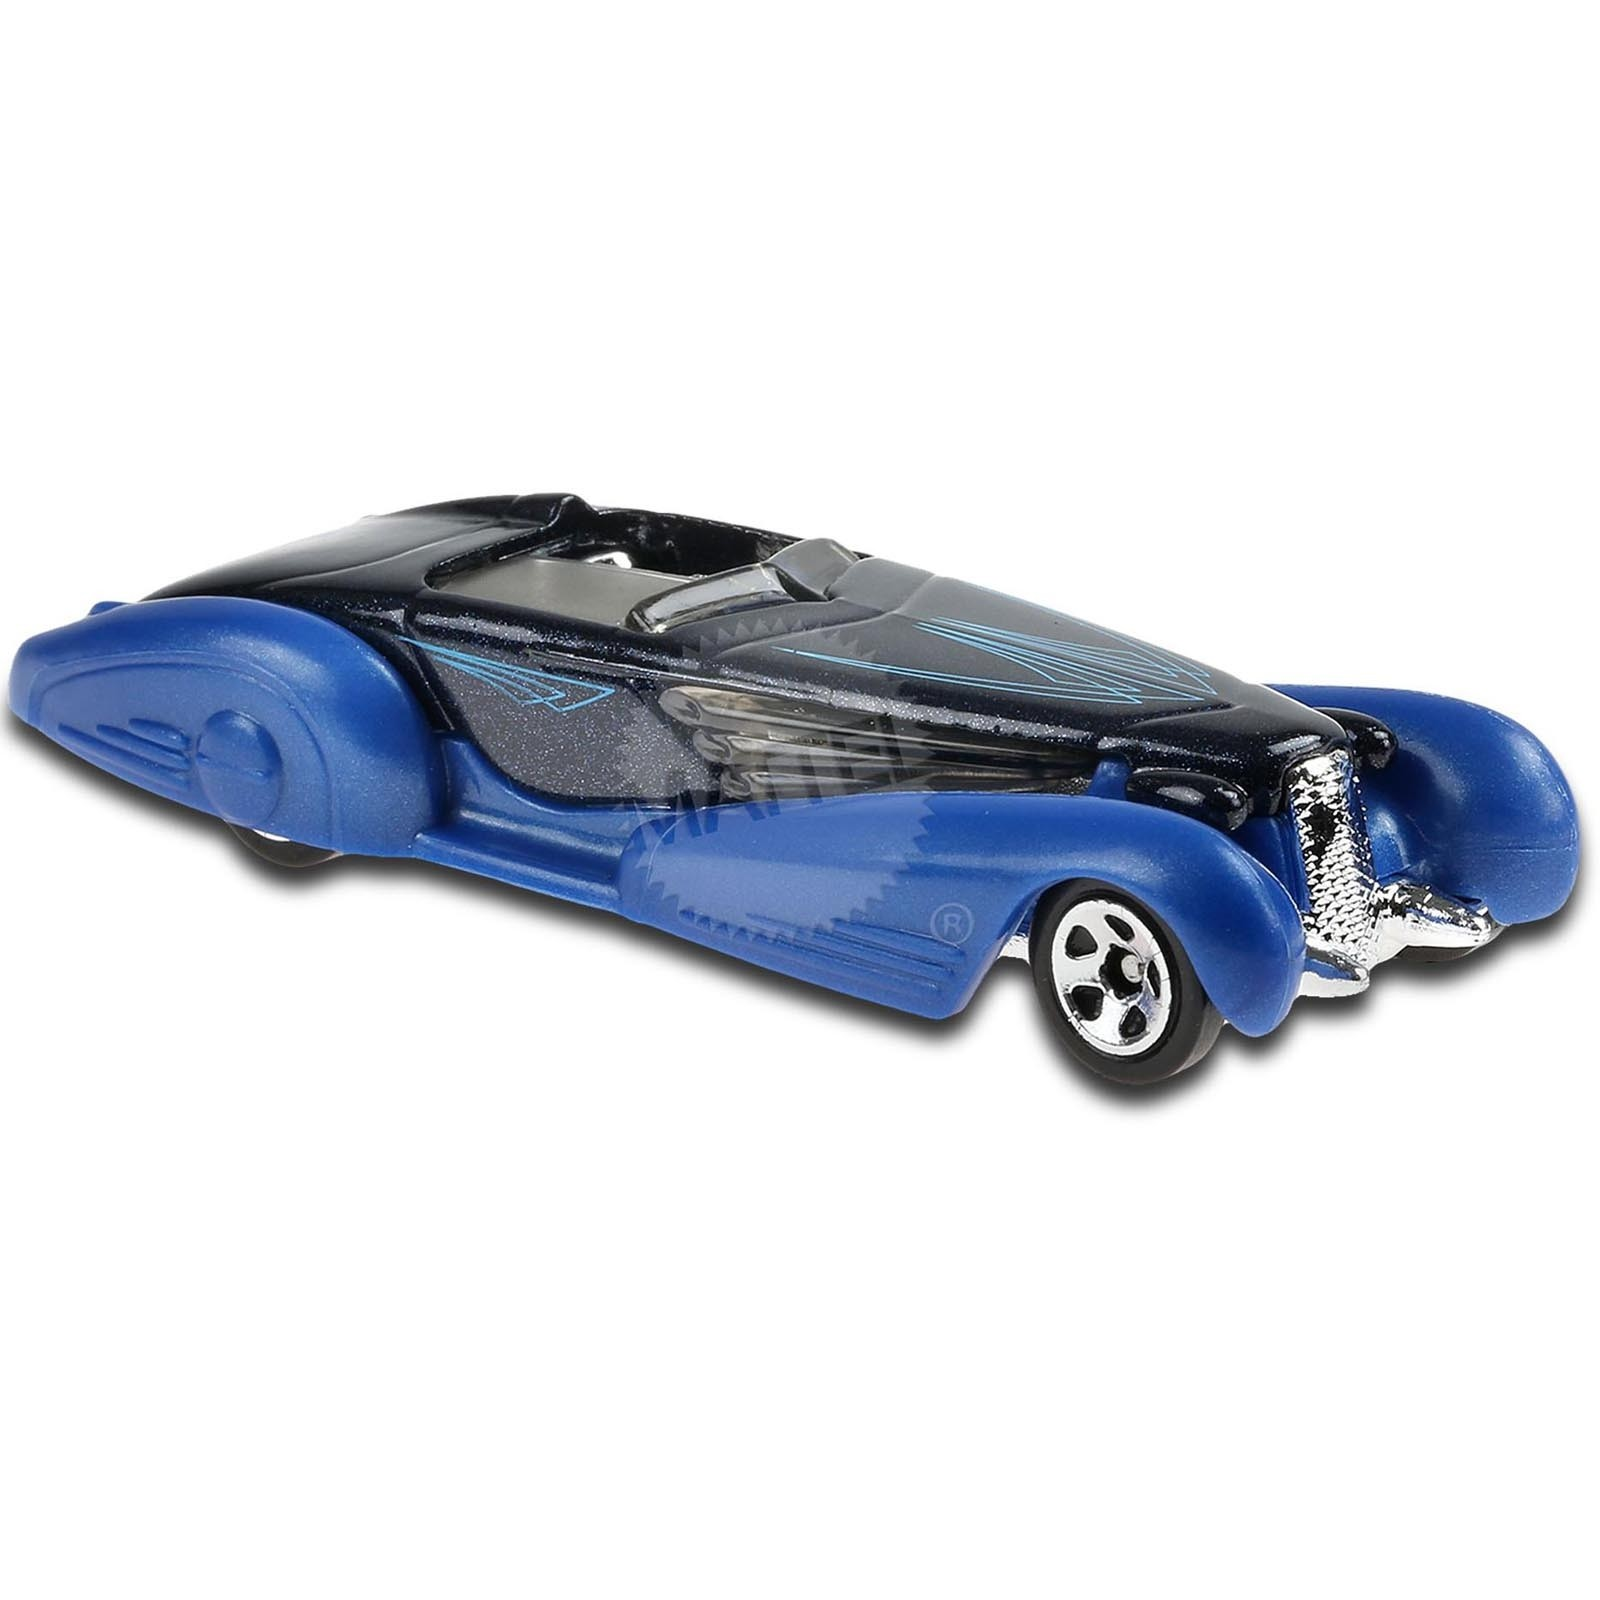 Hot Wheels - Custom Cadillac Fleetwood - GHF42